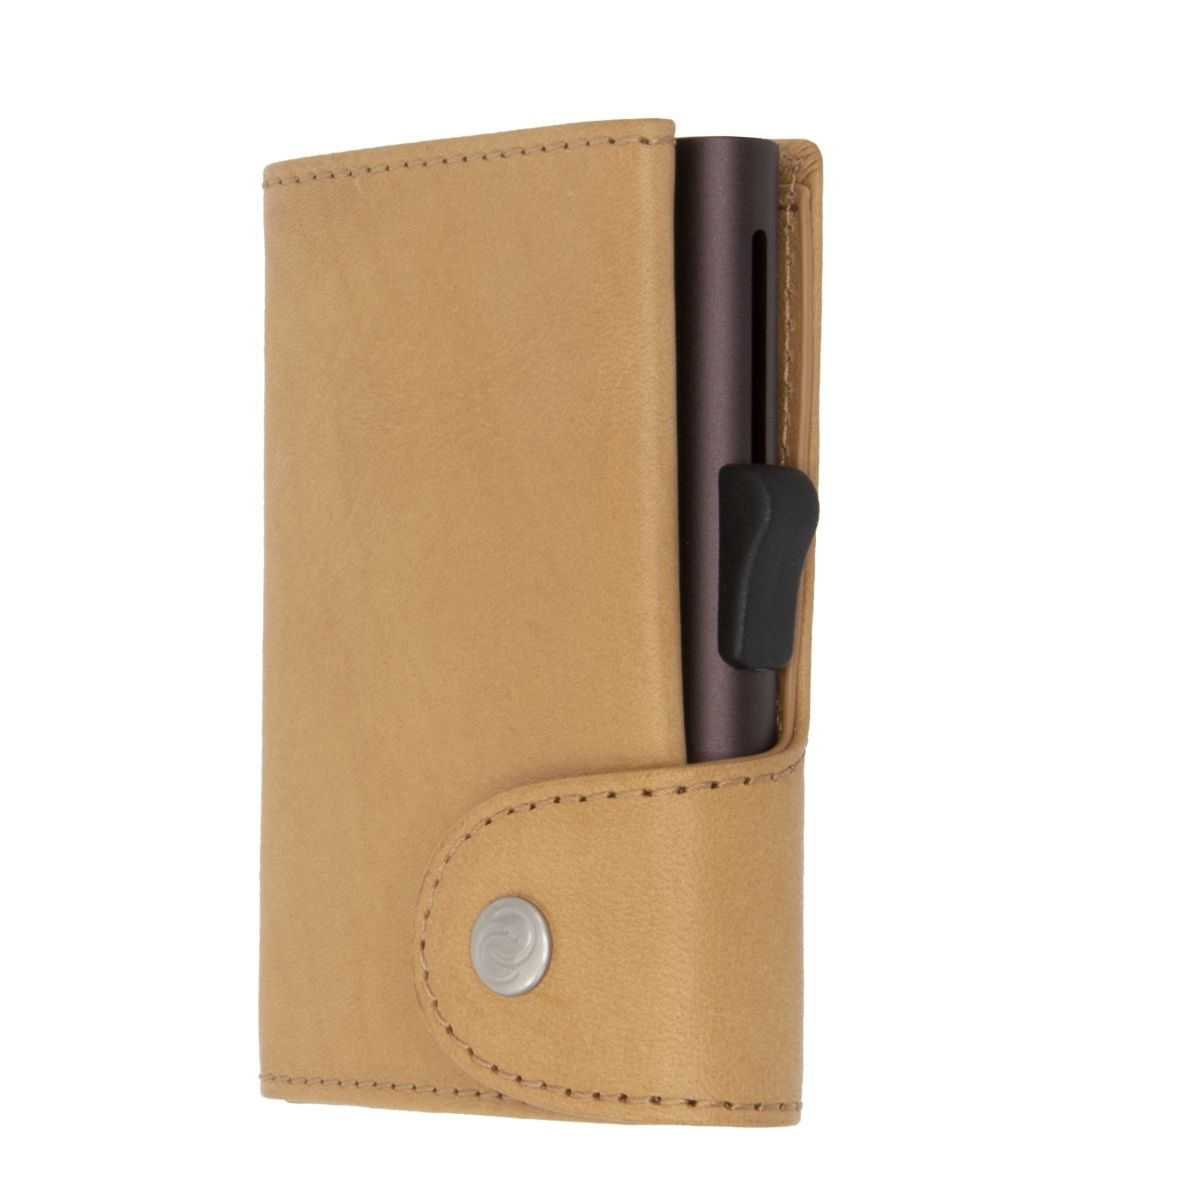 C-Secure XL Aluminum Wallet with Vegetable Genuine Leather - Saddle